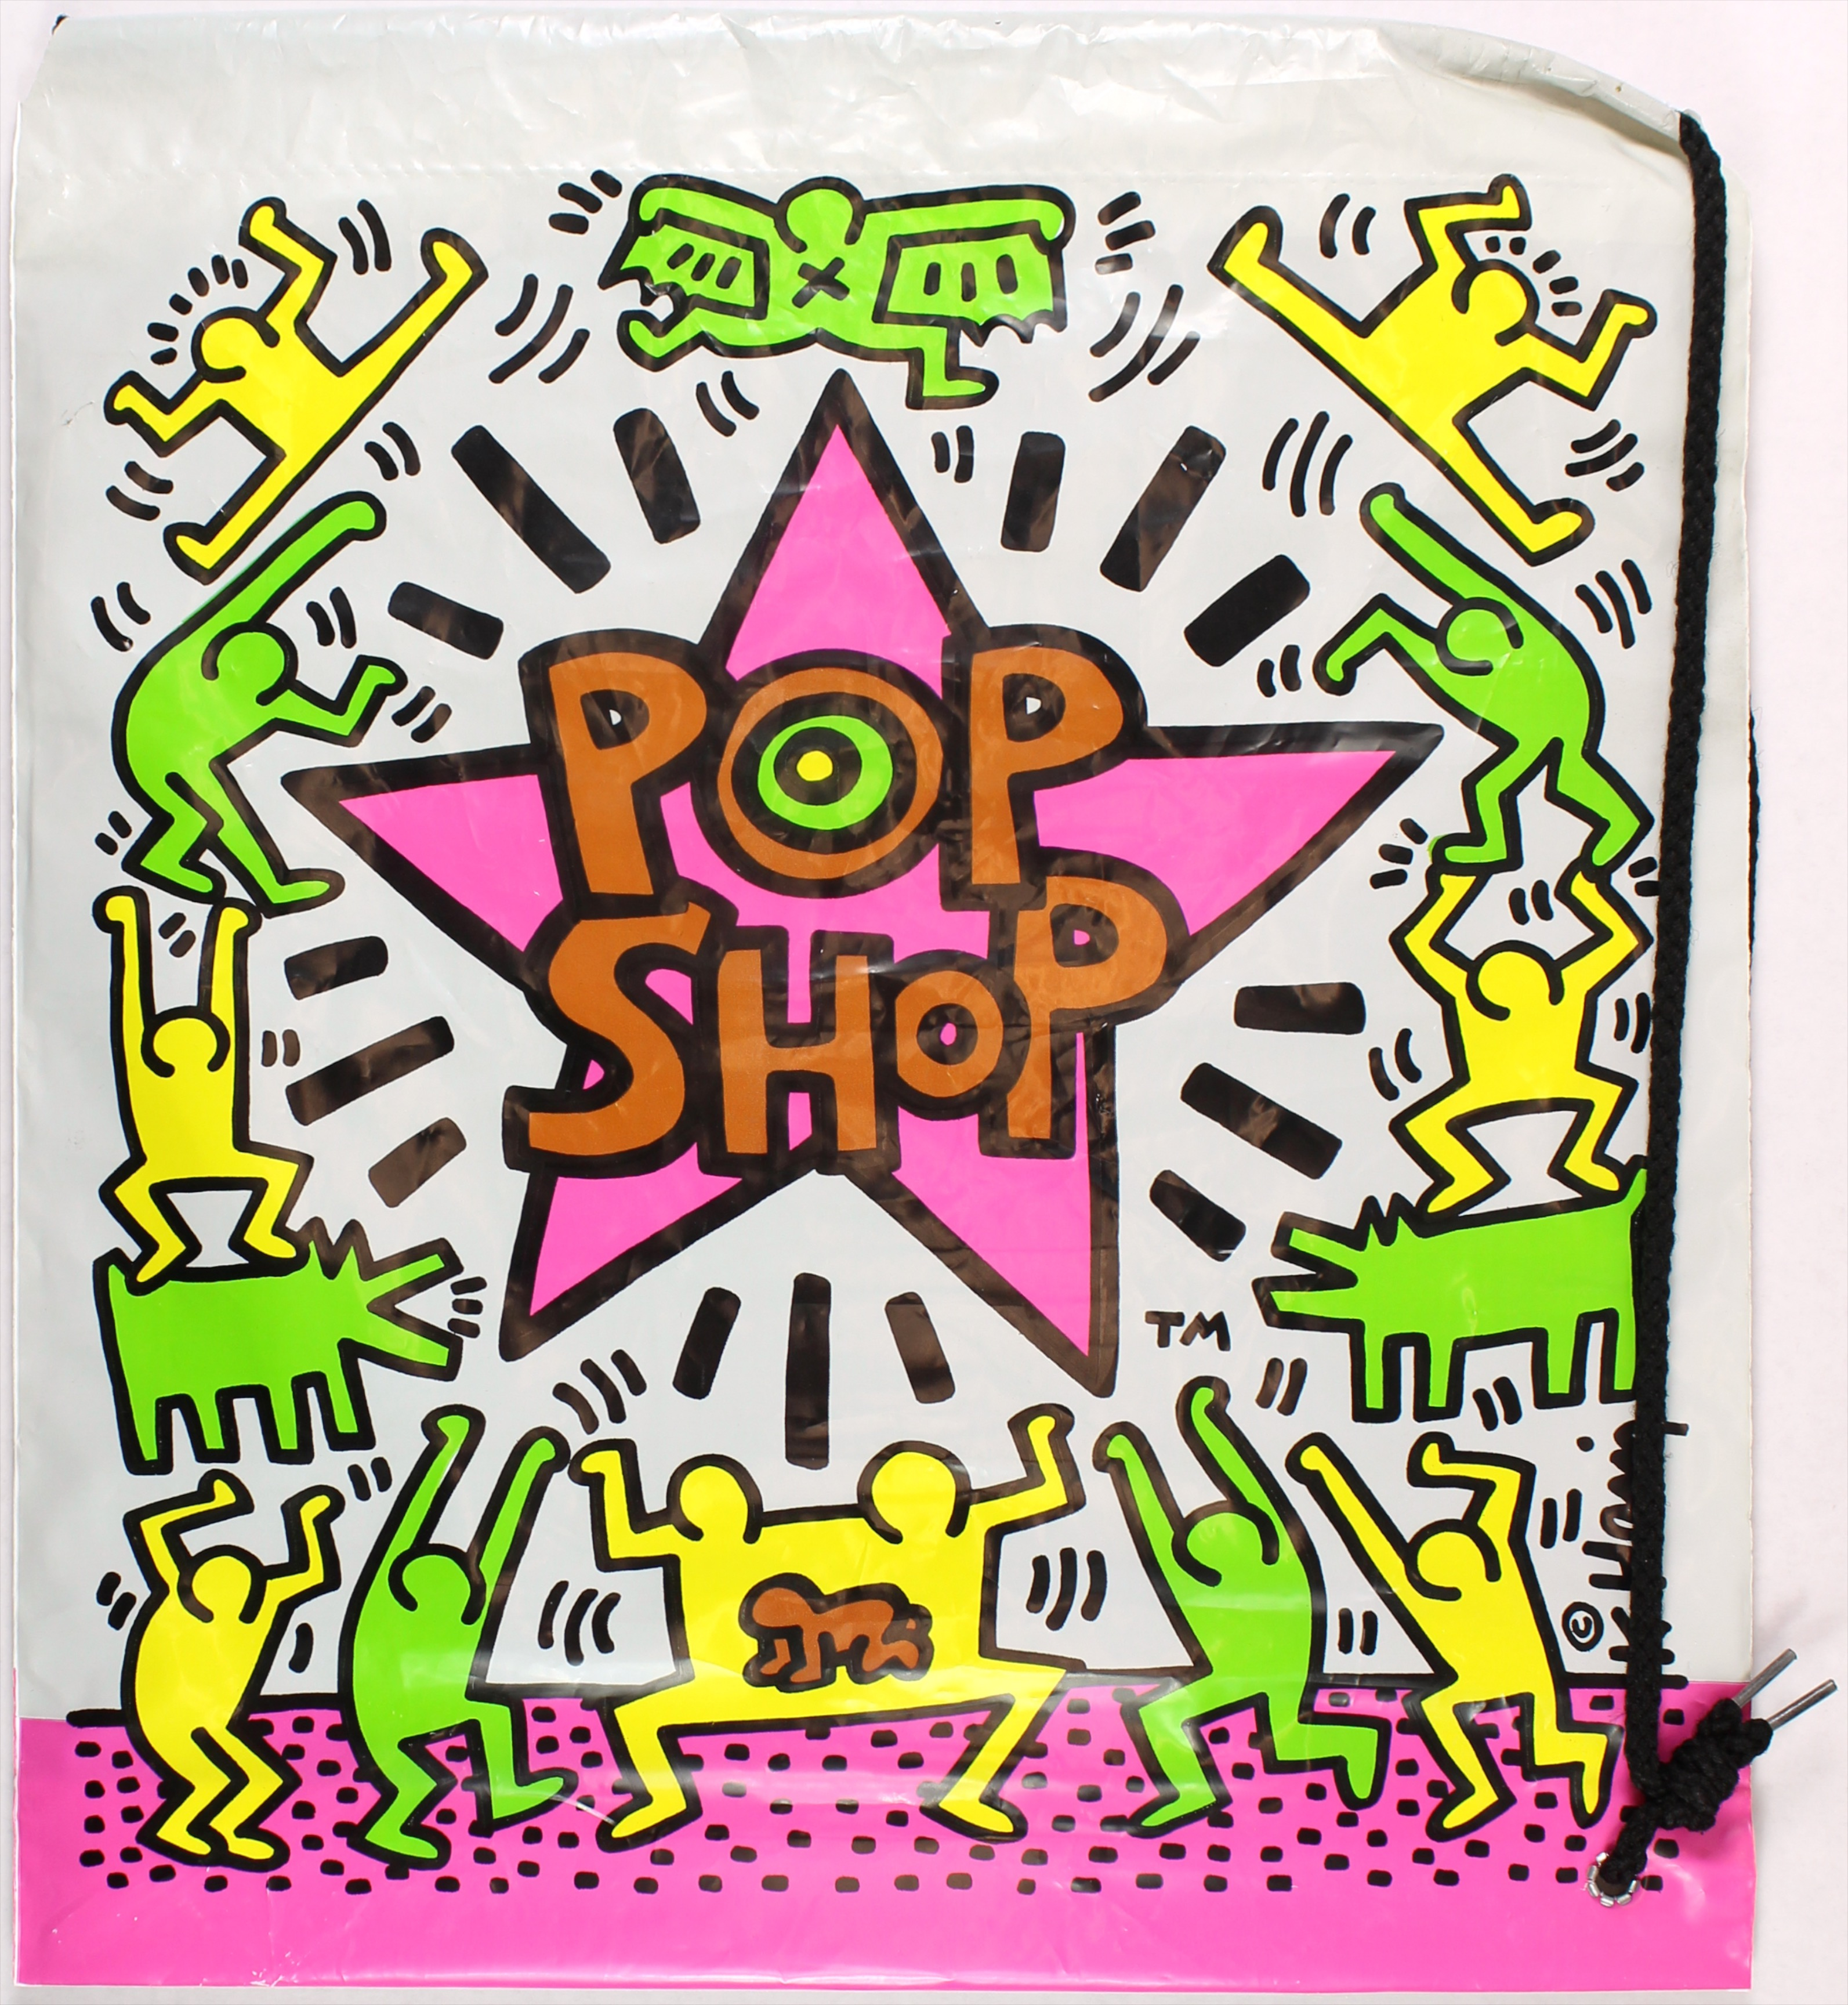 124ab5a48 Pop Shop bag. Courtesy of Harper's Apartment. Keith Haring graphic.